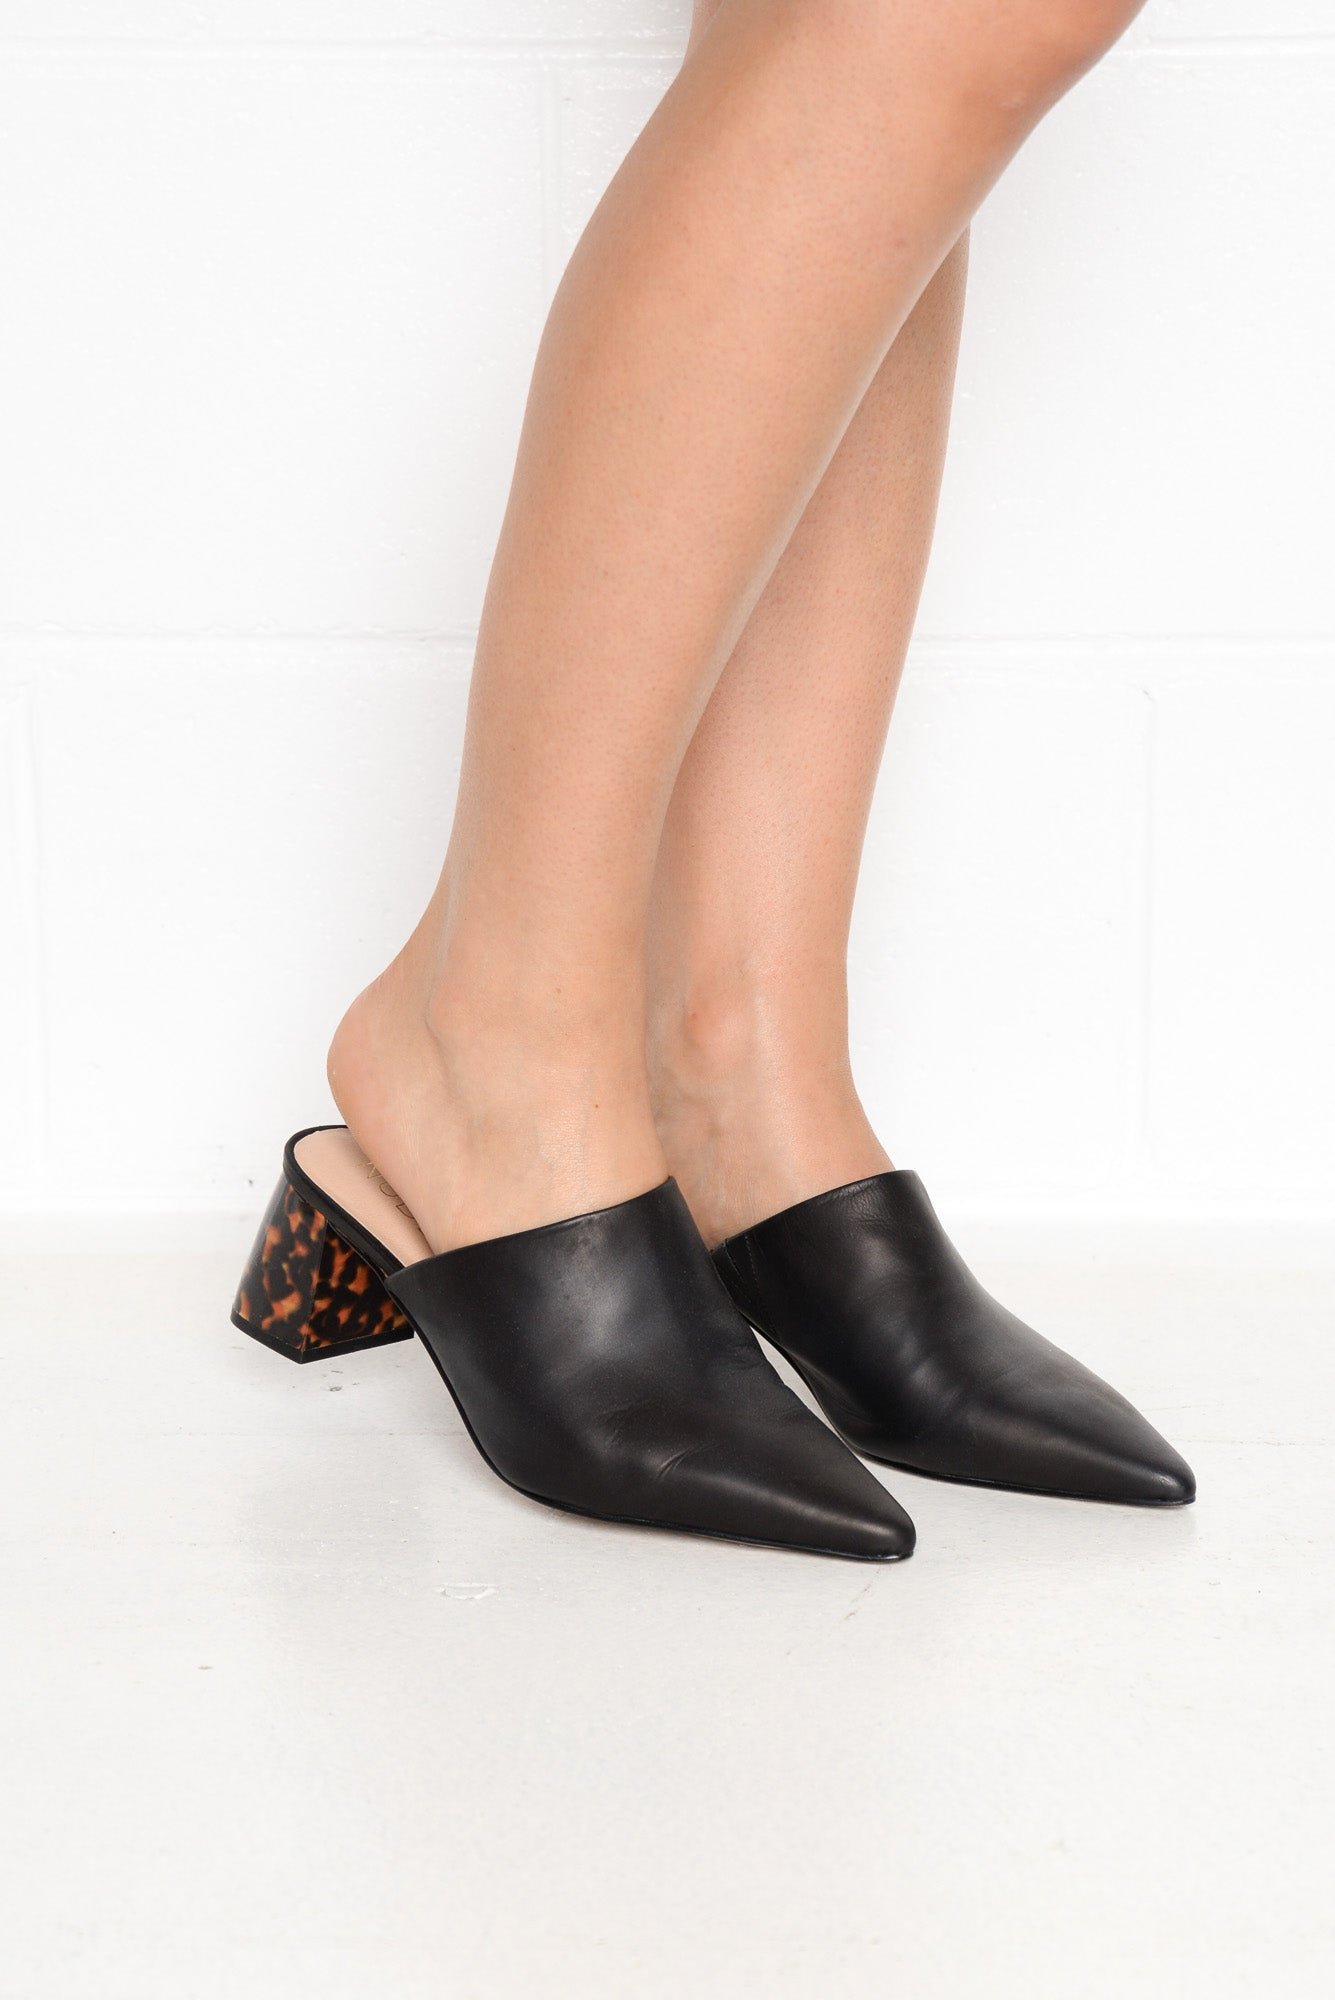 Mavis Black Leather and Tortoiseshell Heel